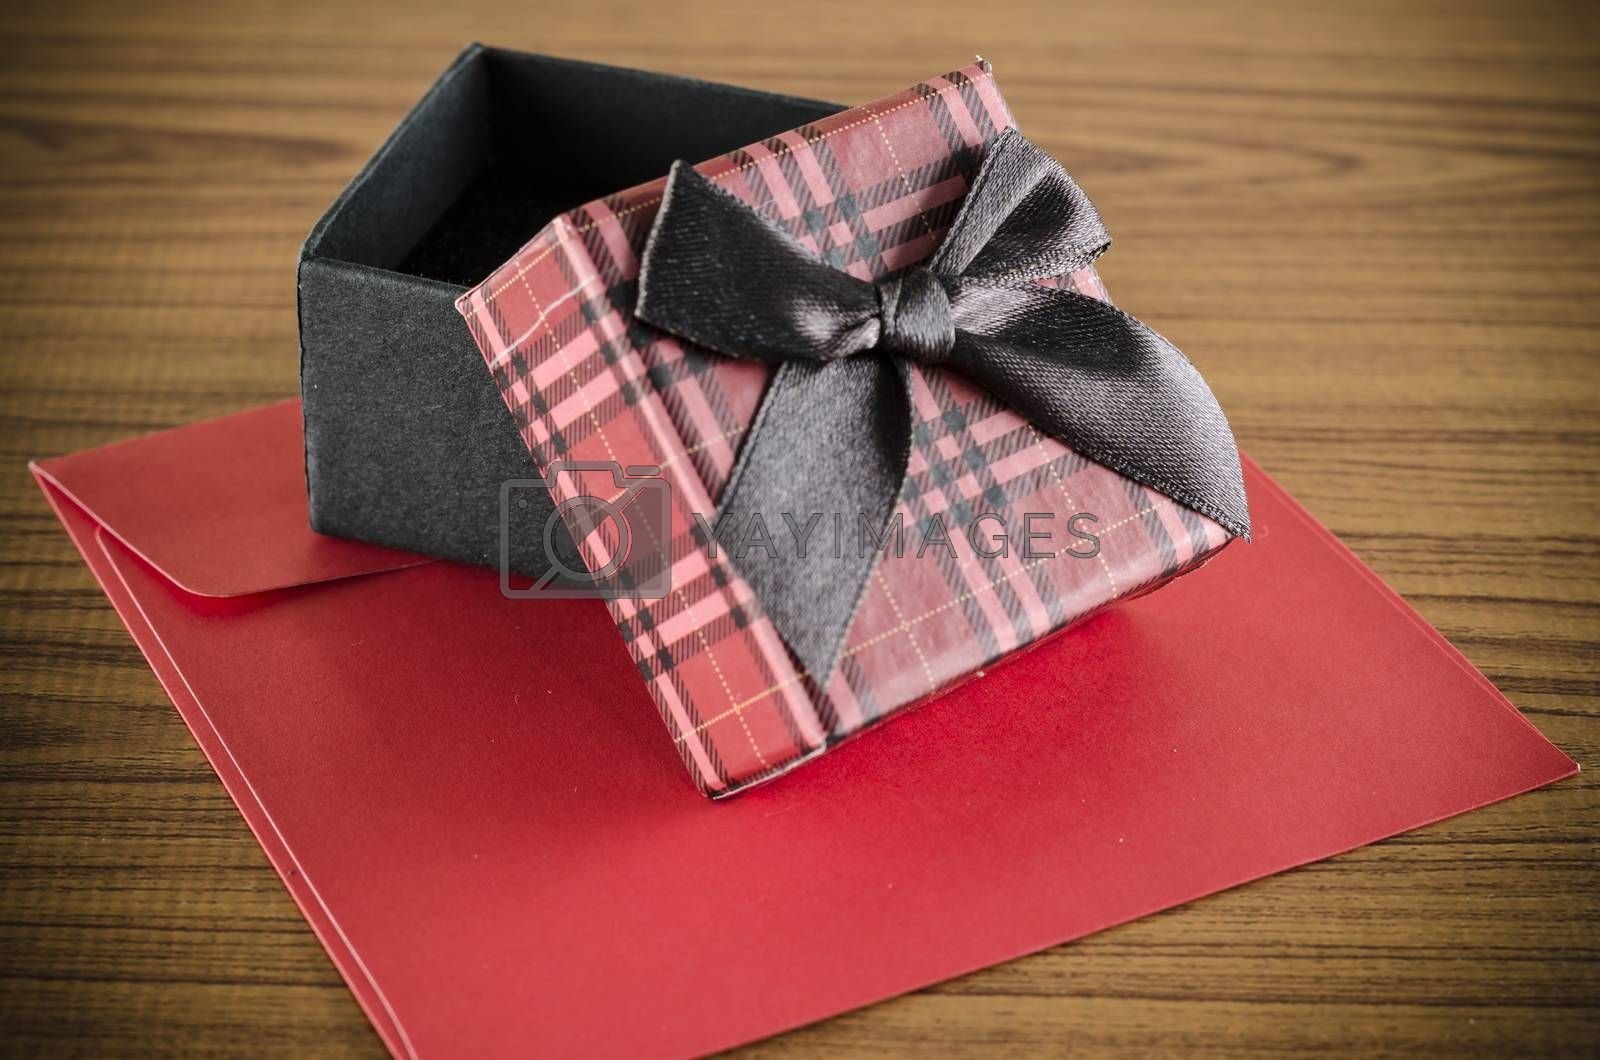 Royalty free image of red gift box and envelope by ammza12